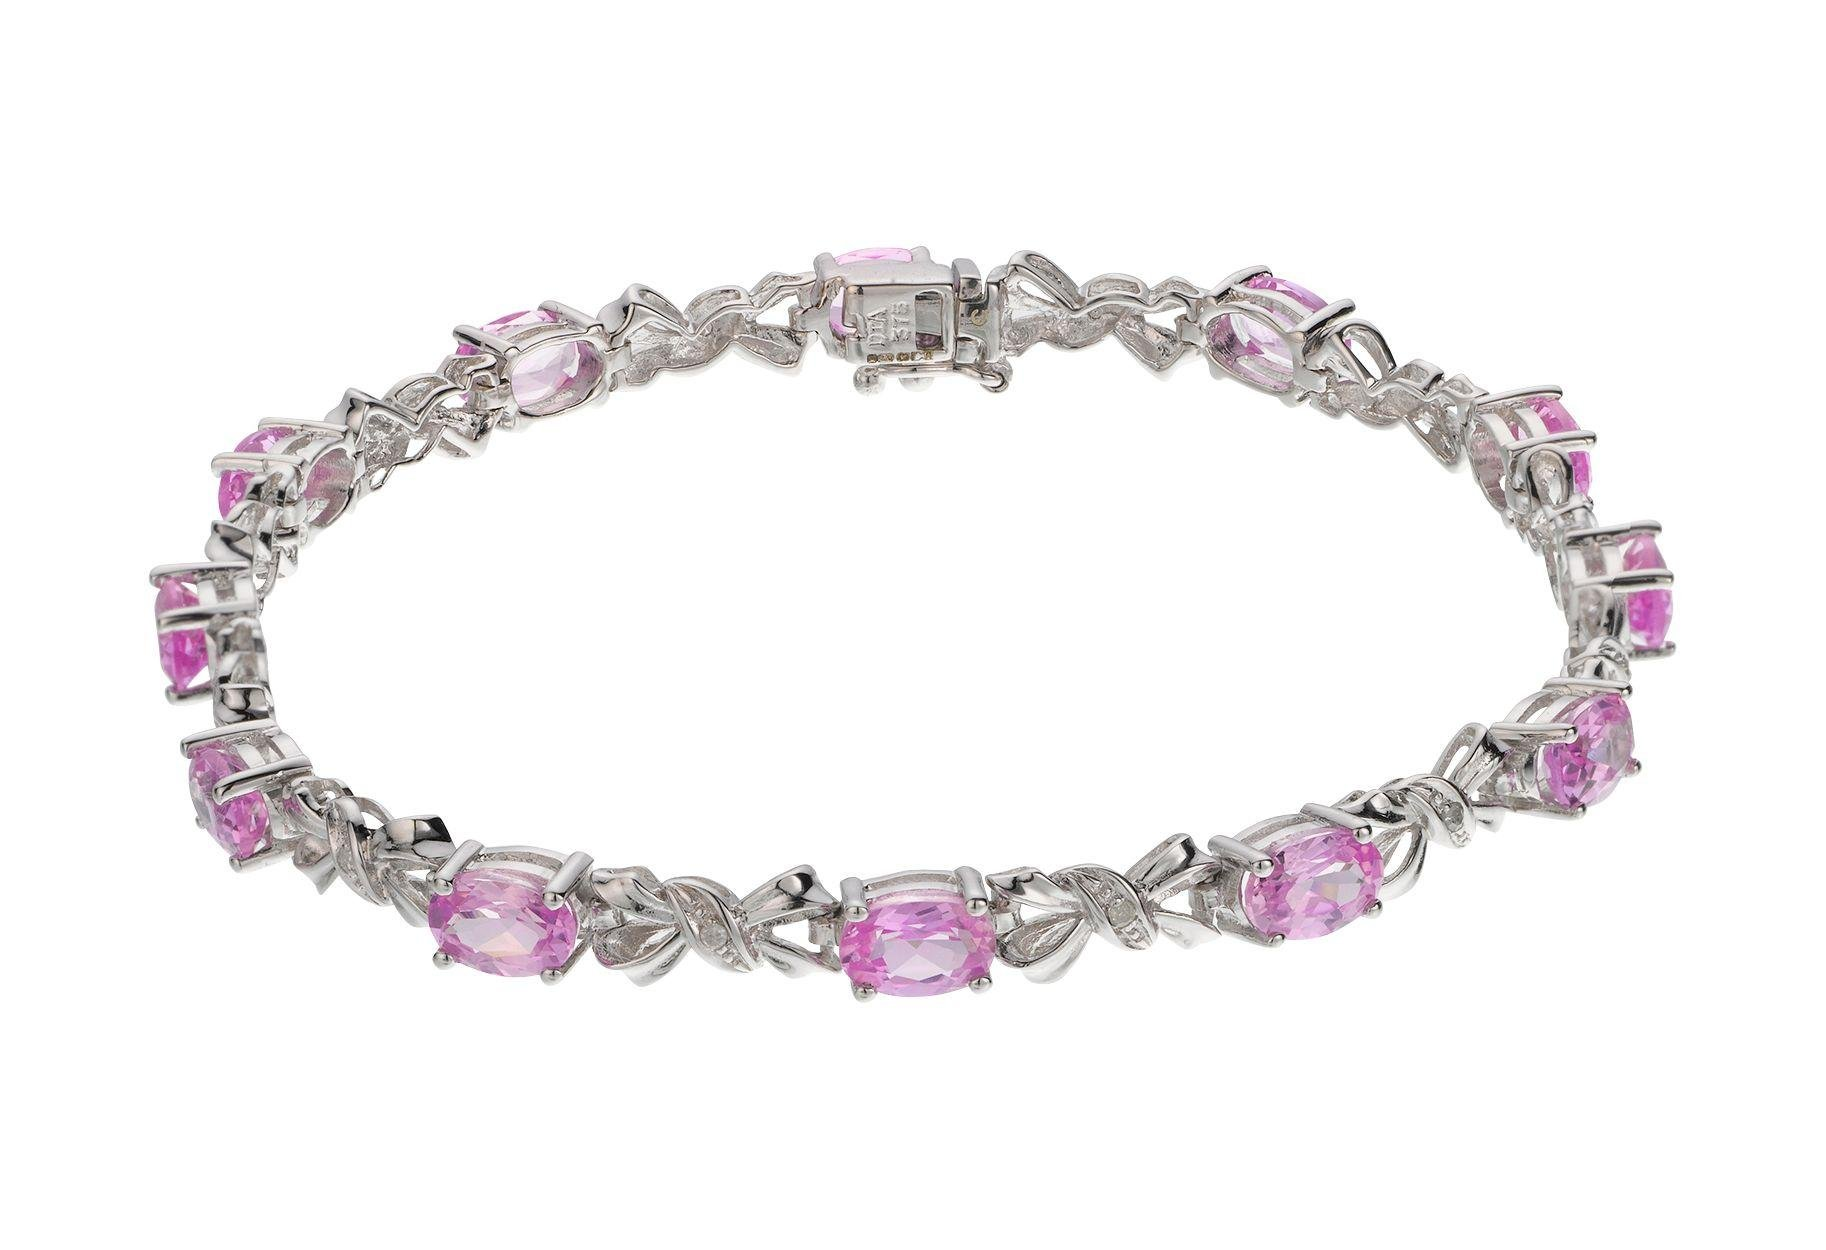 Image of 9ct White Gold Created Pink Sapphire and Diamond Bracelet.